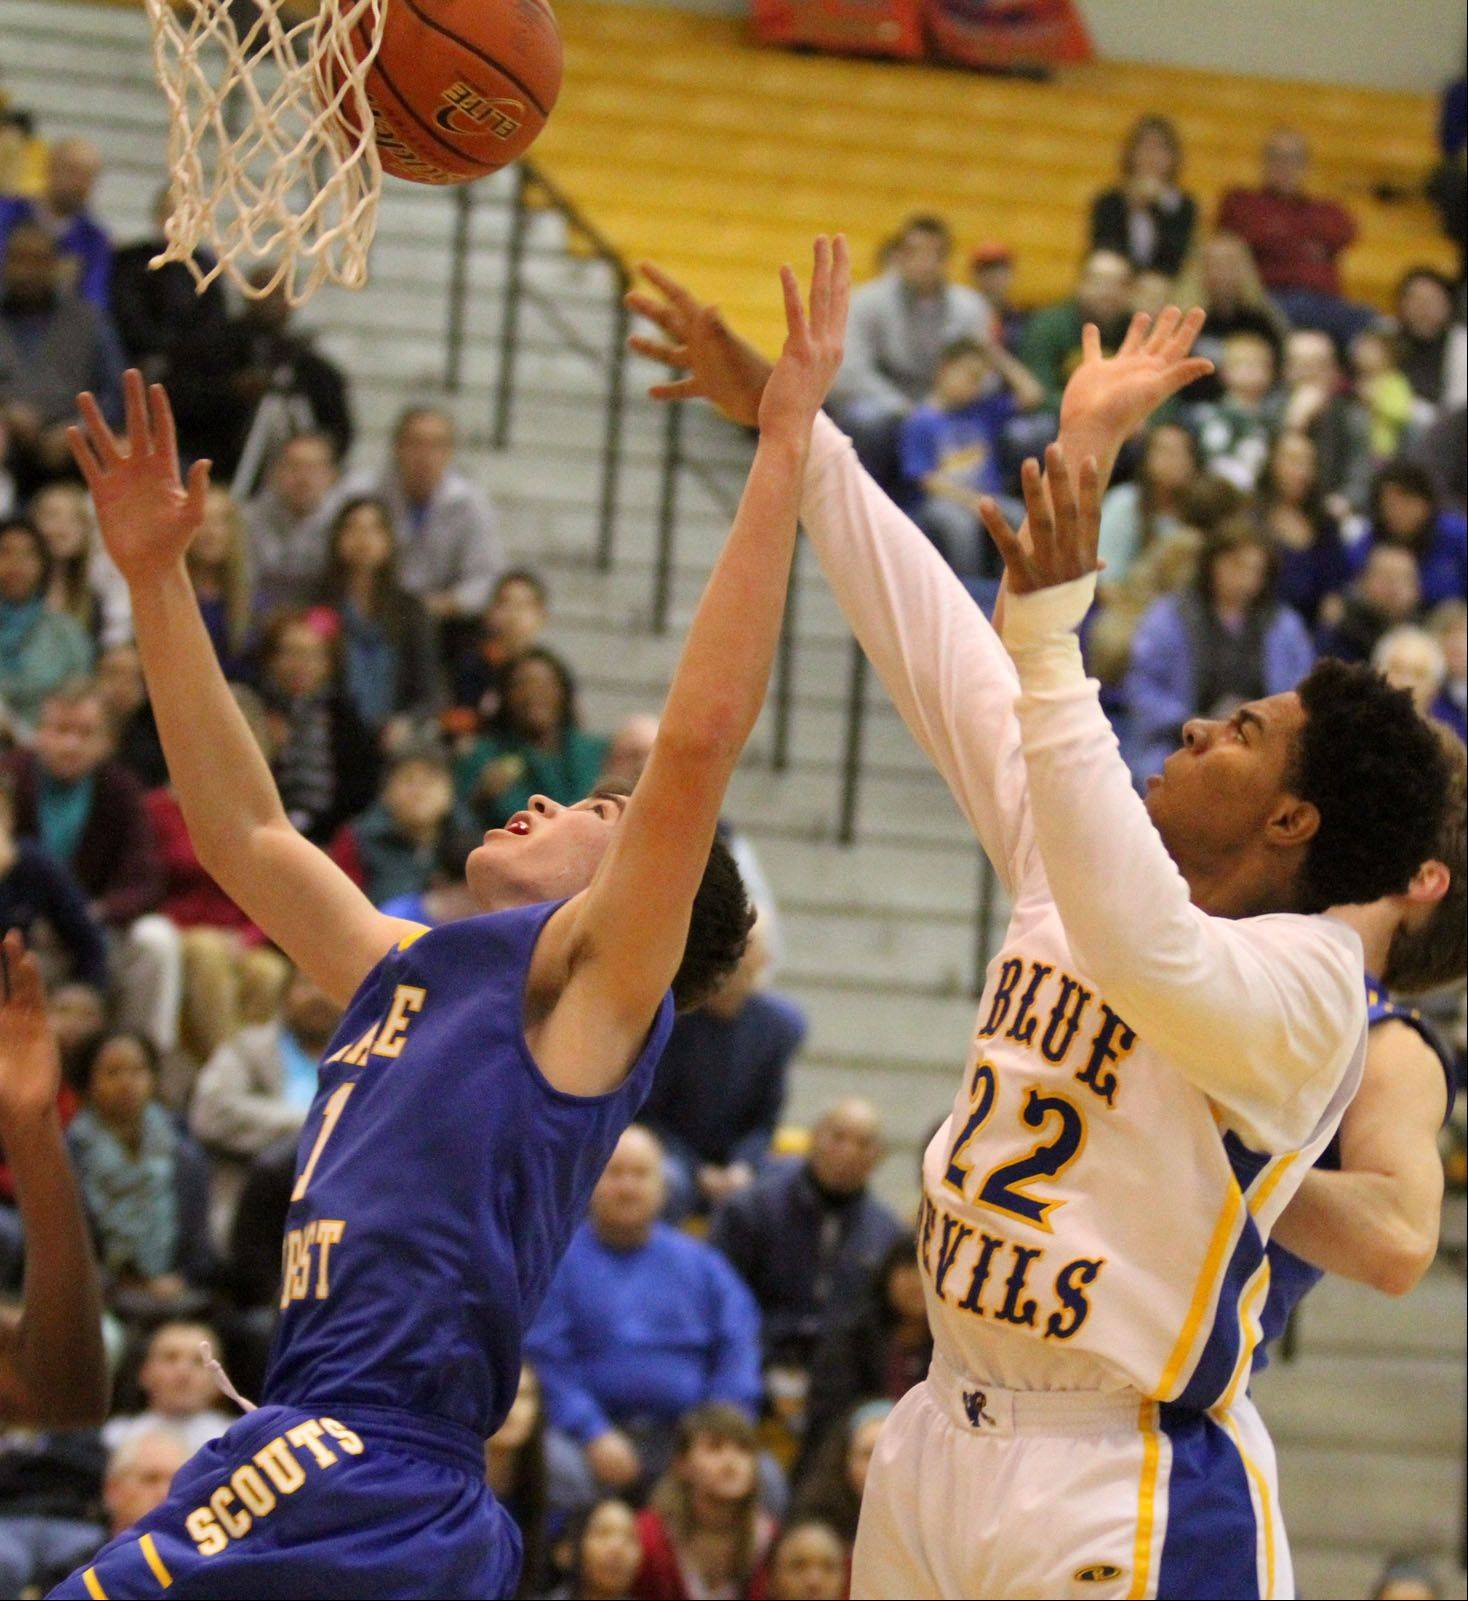 Warren's Dominic Cuevas leaps for a rebound against Lake Forest defender Ben Simpson.